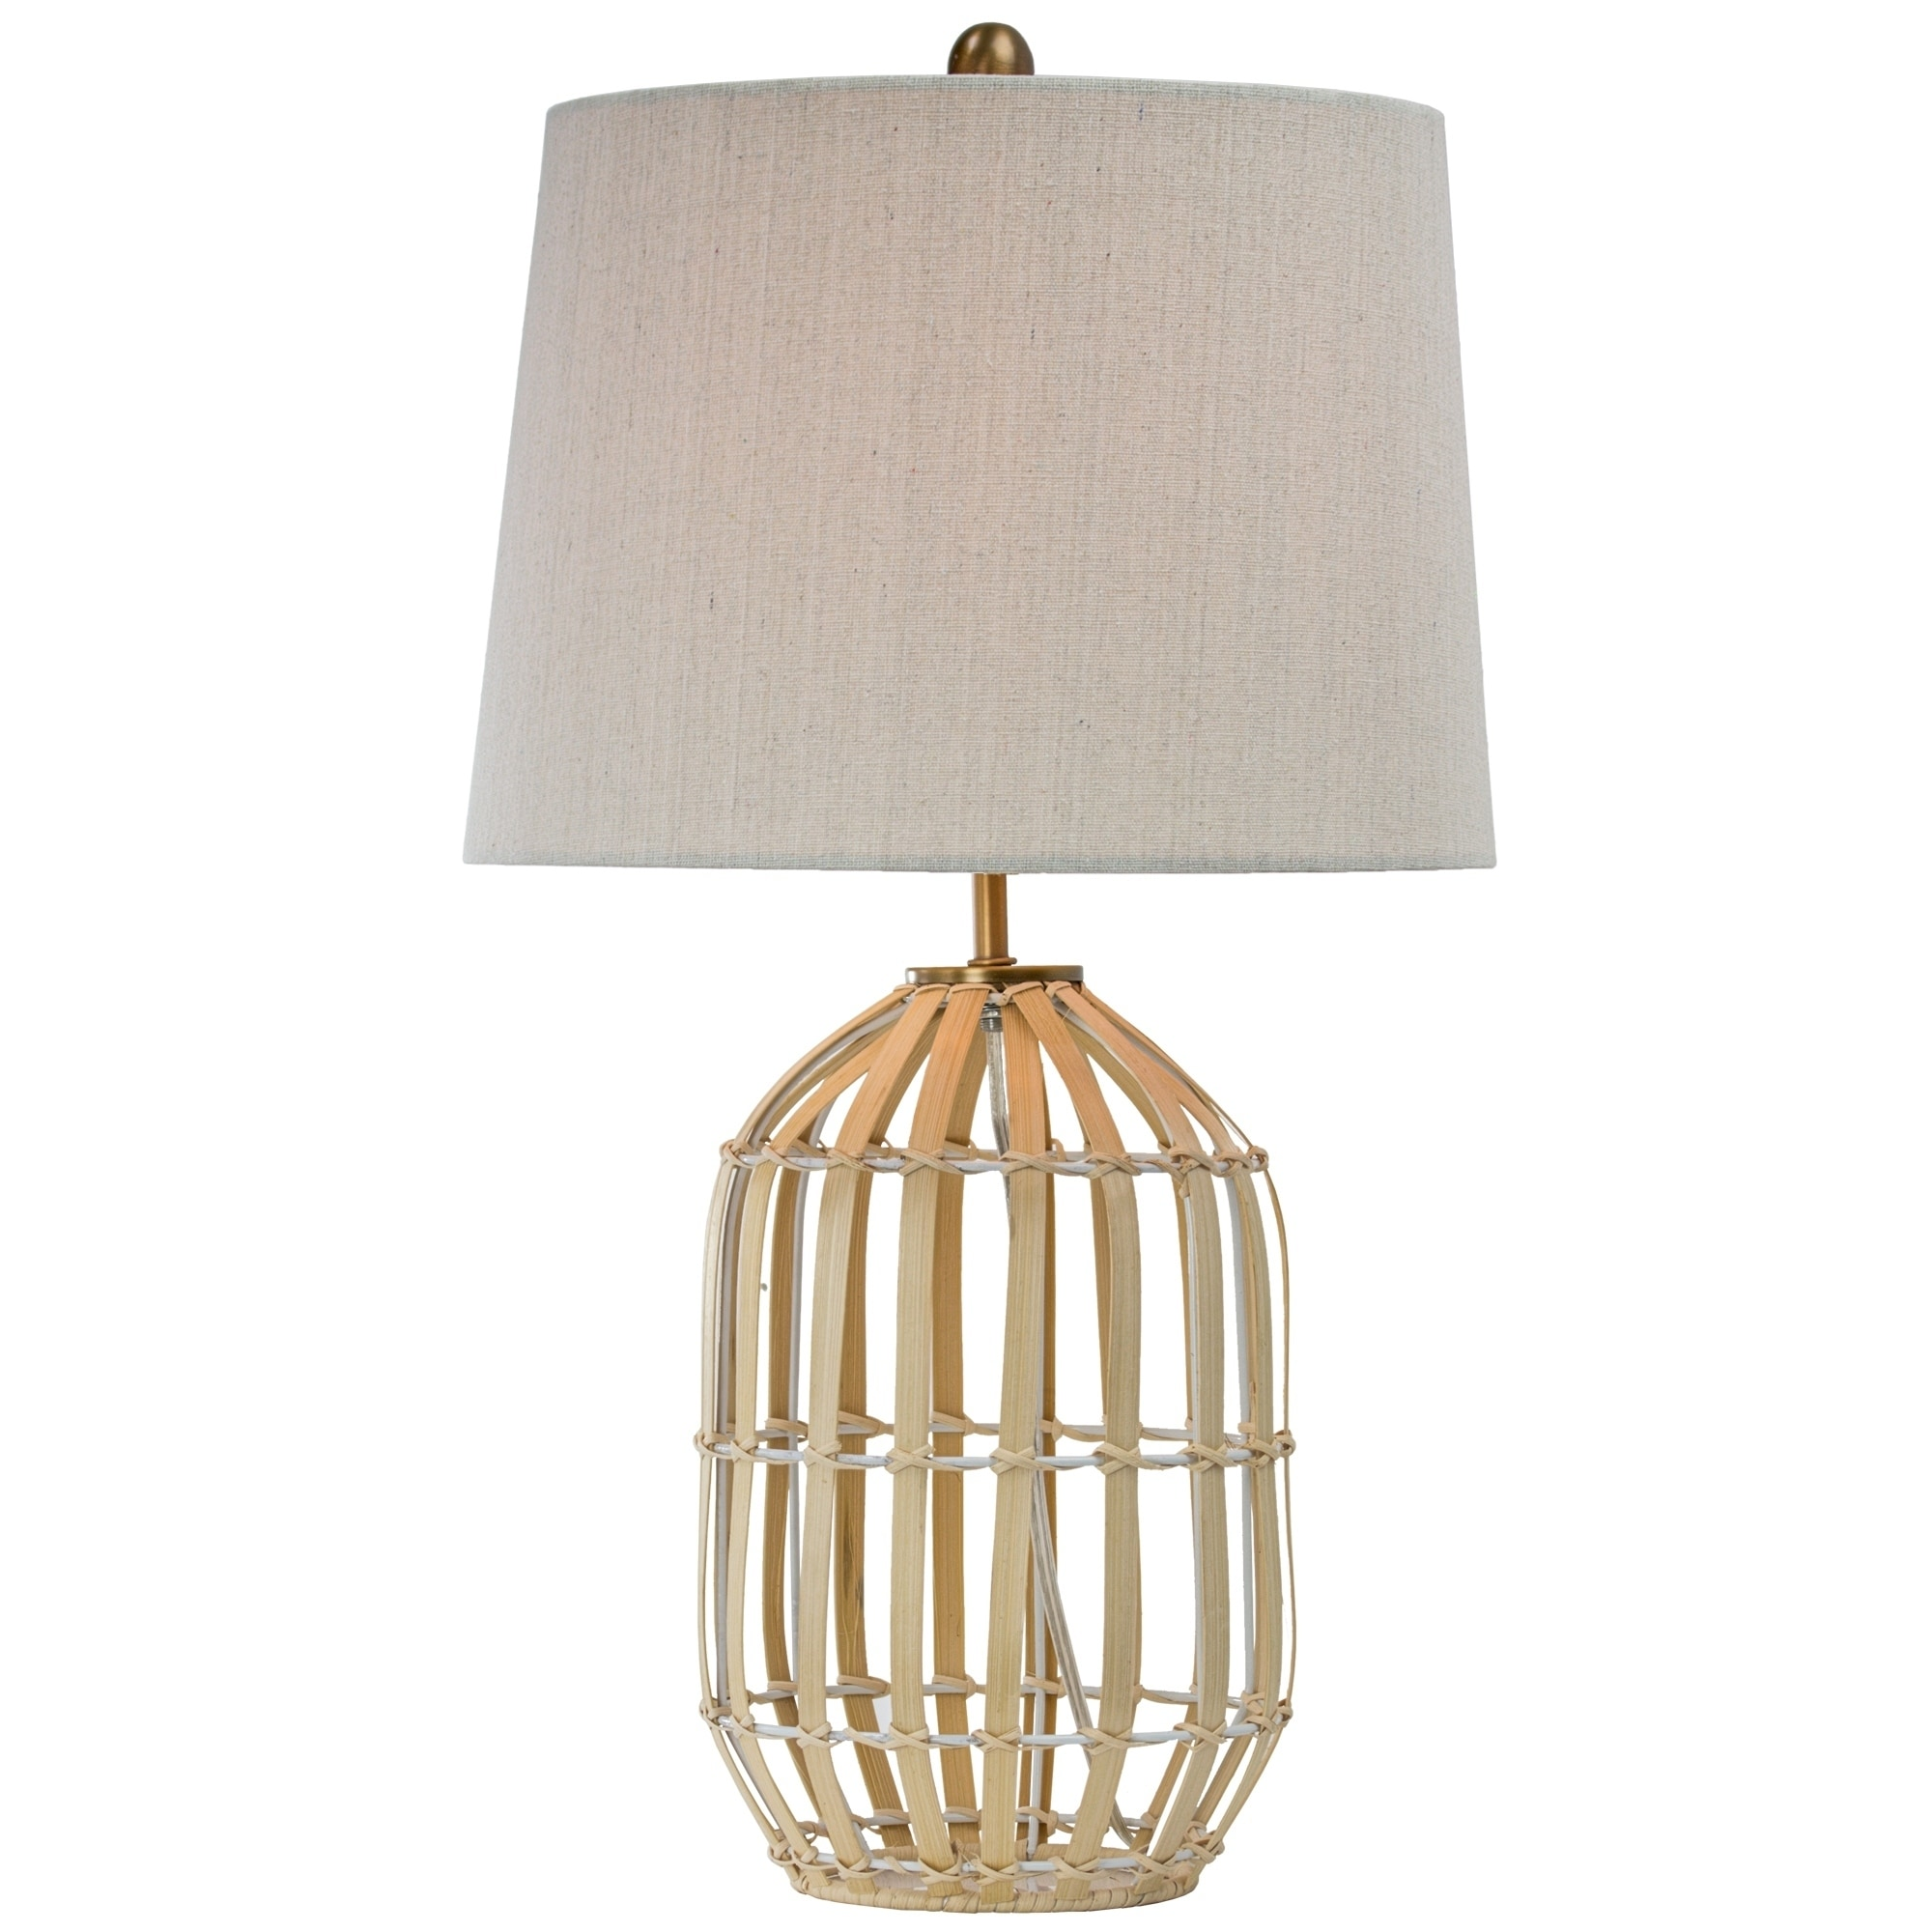 Rattan Table Lamp With Canvas Drum Shade 25 On Sale Overstock 29869476